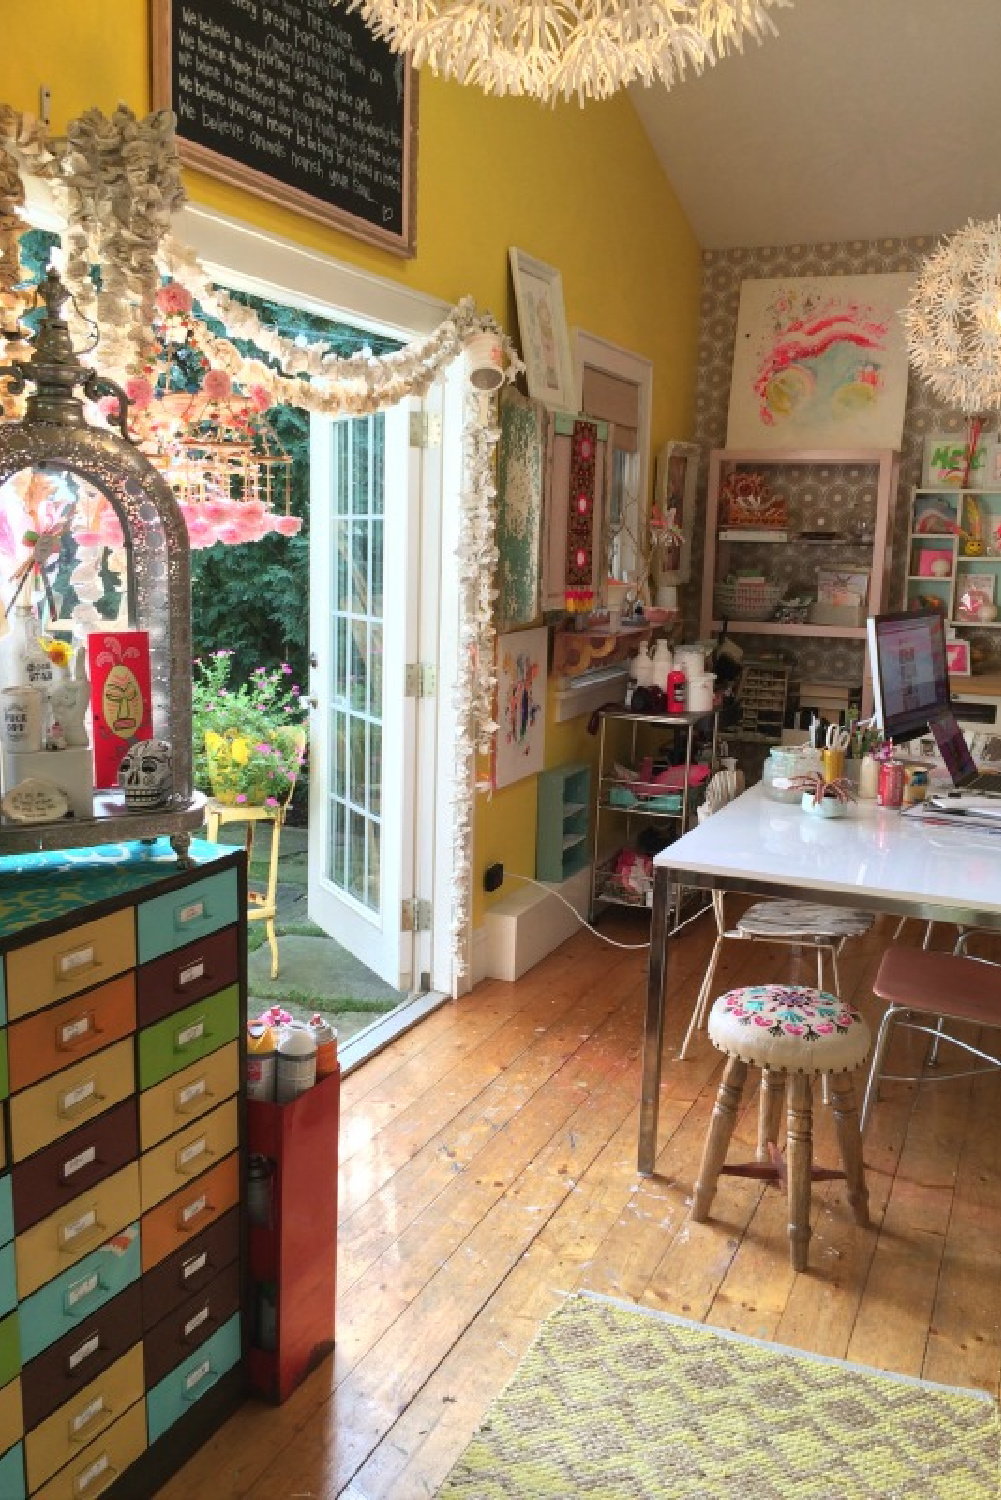 Cheerful and colorful art studio of Jenny Sweeney with flea market style and wild whimsy.